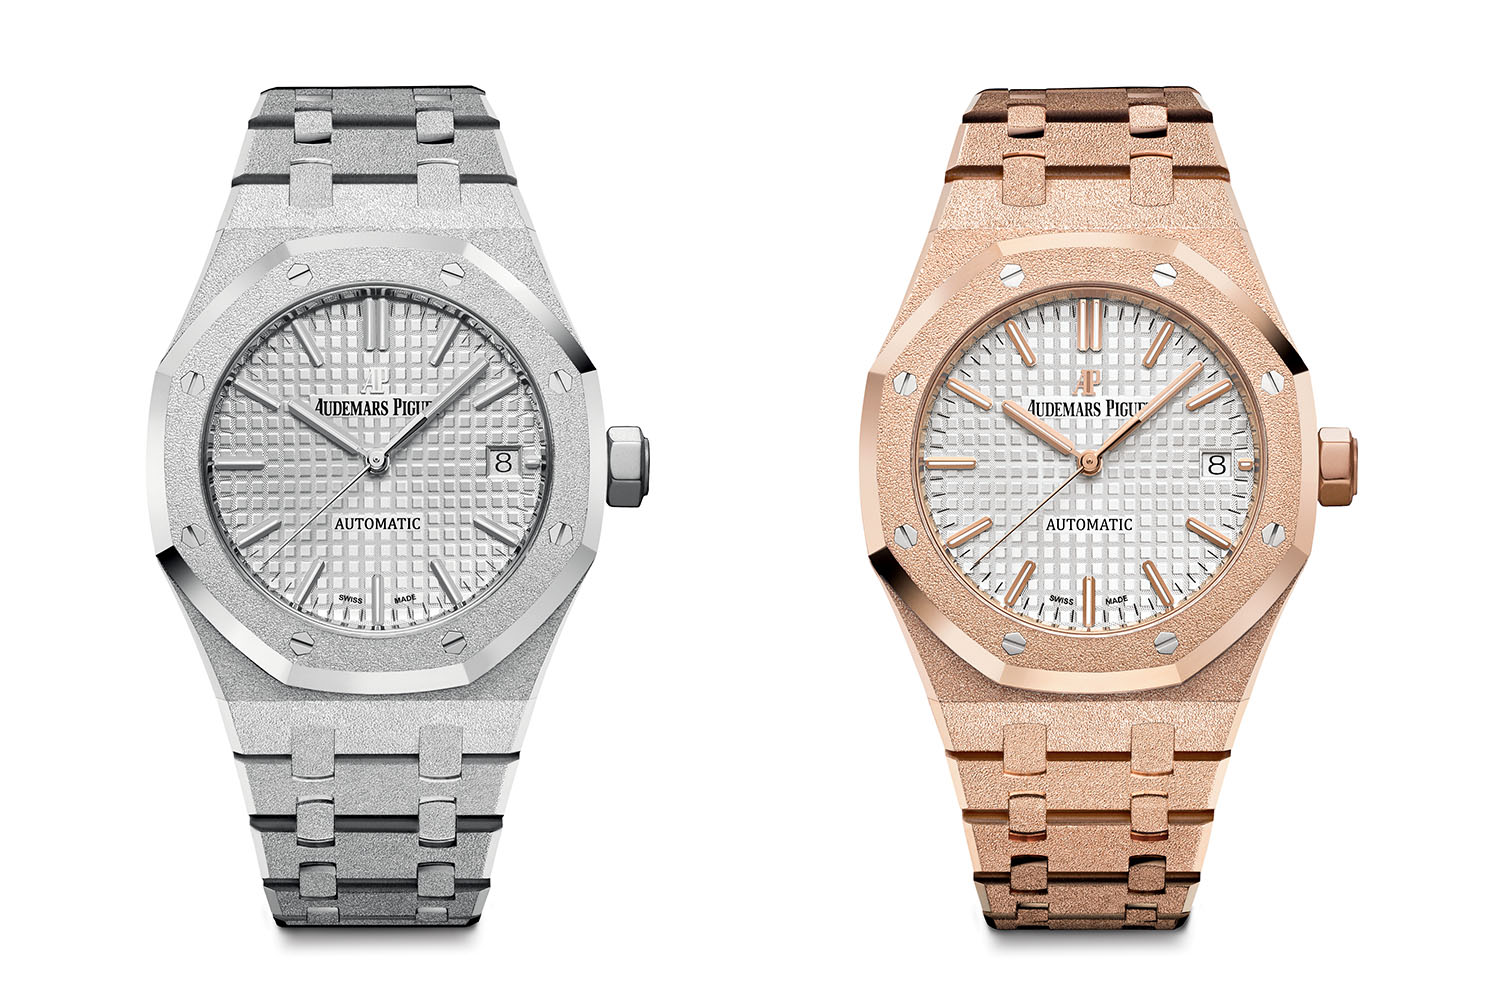 Replica Audemars Piguet Royal Oak Frosted Gold Watch